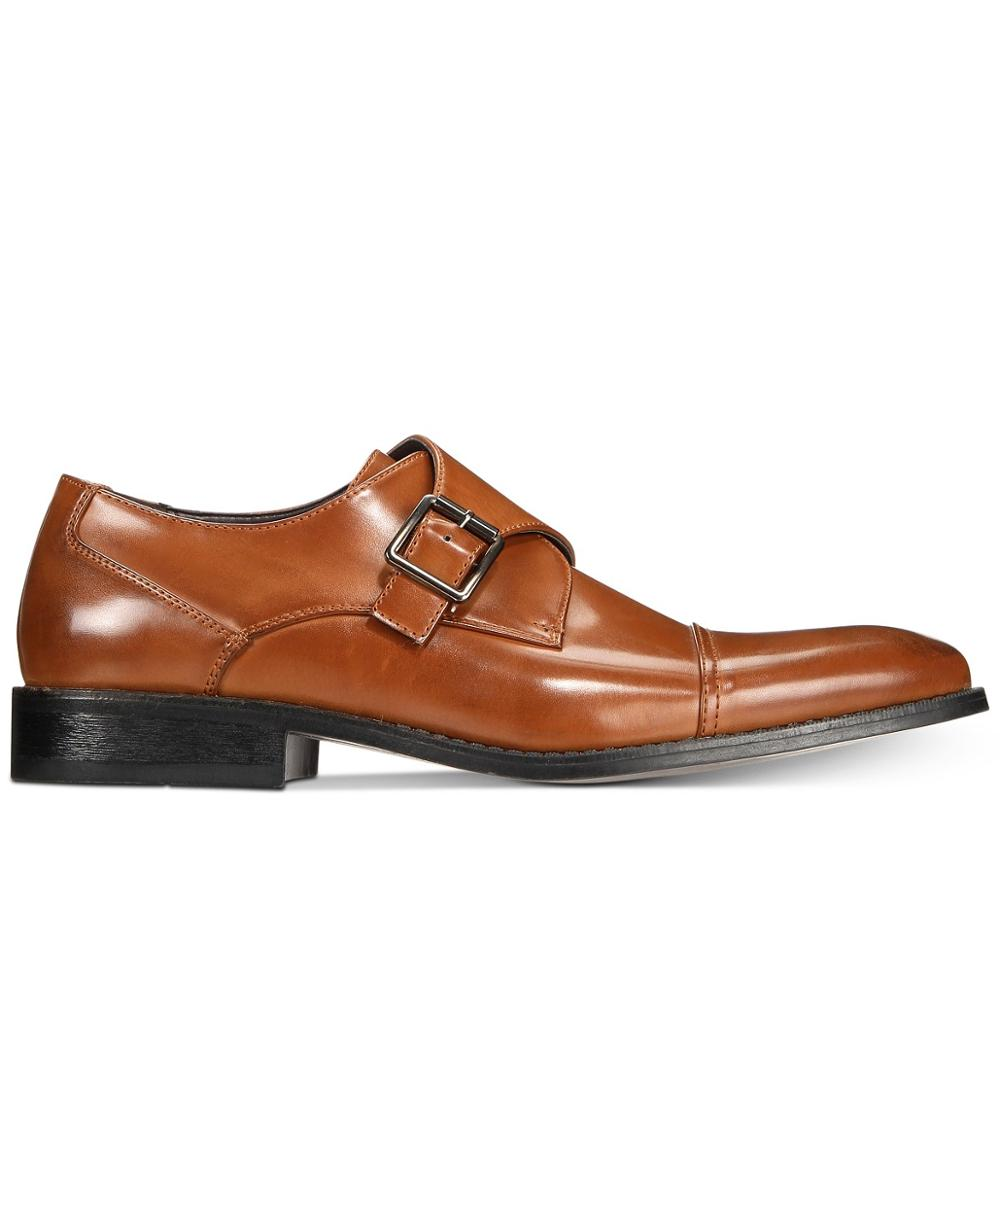 loafers the and office with these strap monk closure ready look off slip of finishes your on qwTpHp